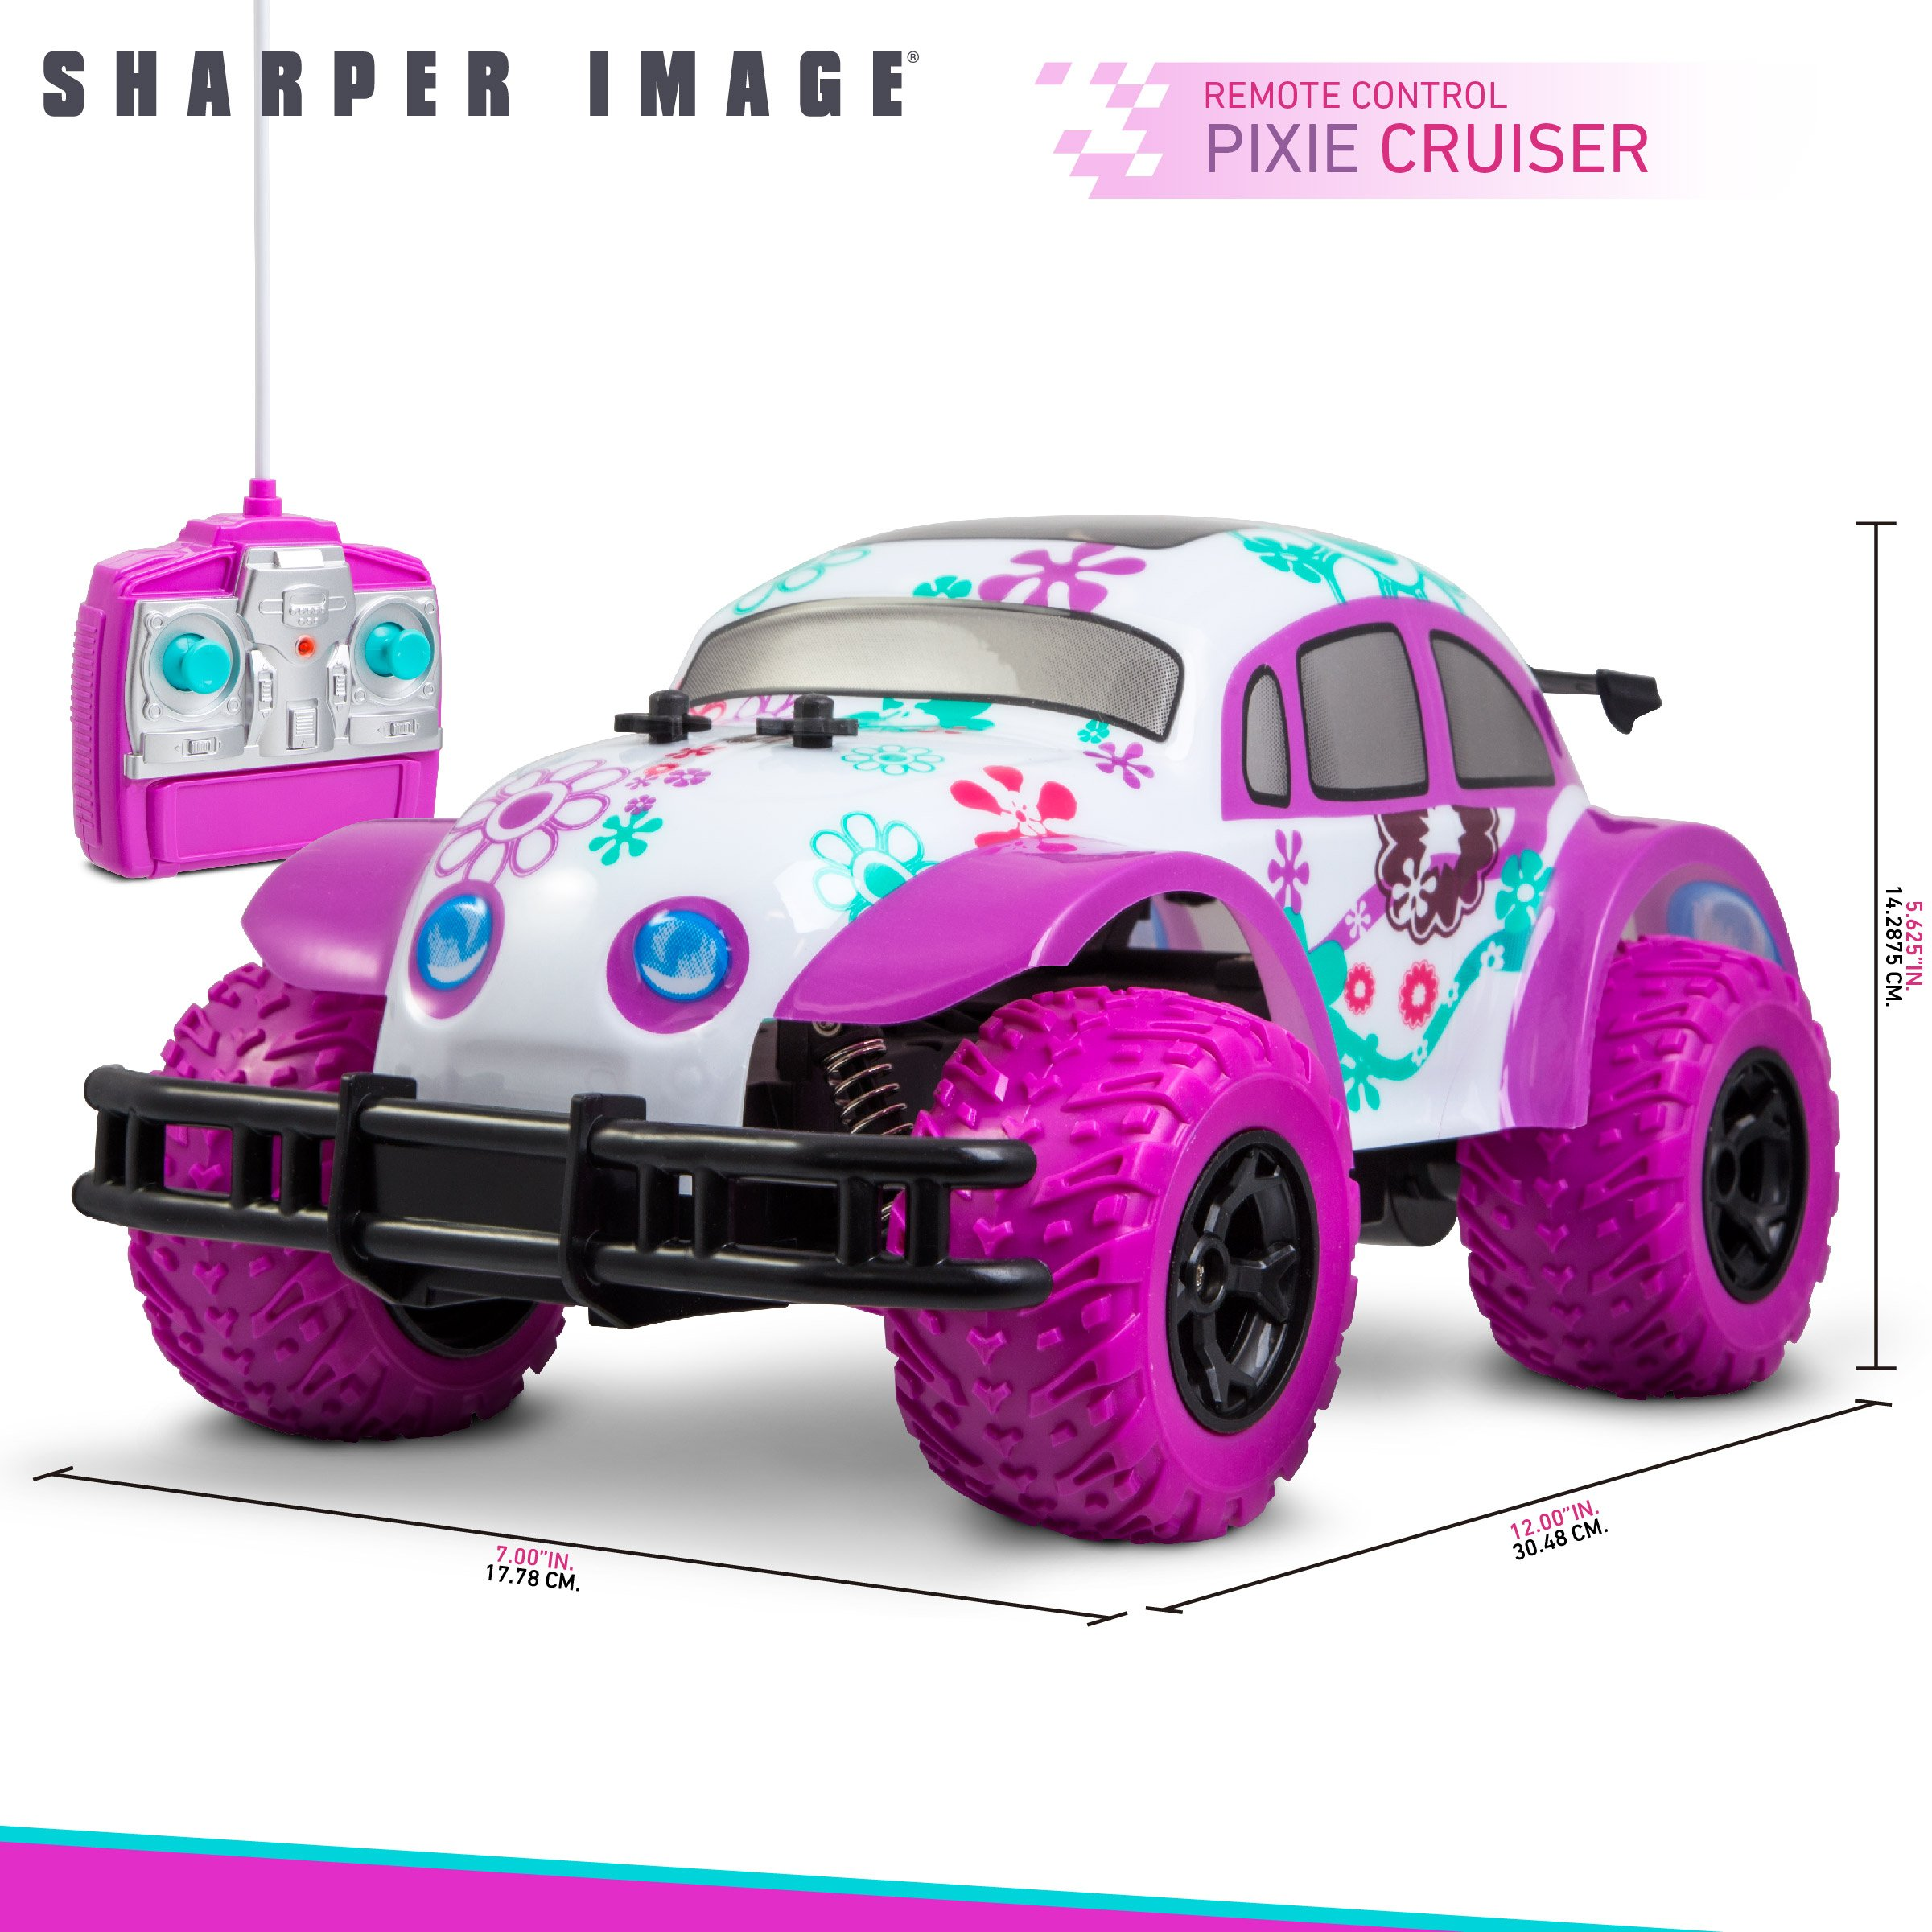 SHARPER IMAGE Pixie Cruiser Pink and Purple RC Remote Control Car Toy for Girls with Off-Road Grip Tires; Princess Style Big Buggy Crawler w/ Flowers Design and Shocks, Race Up to 5 MPH, Ages 6 Year + by Sharper Image (Image #5)